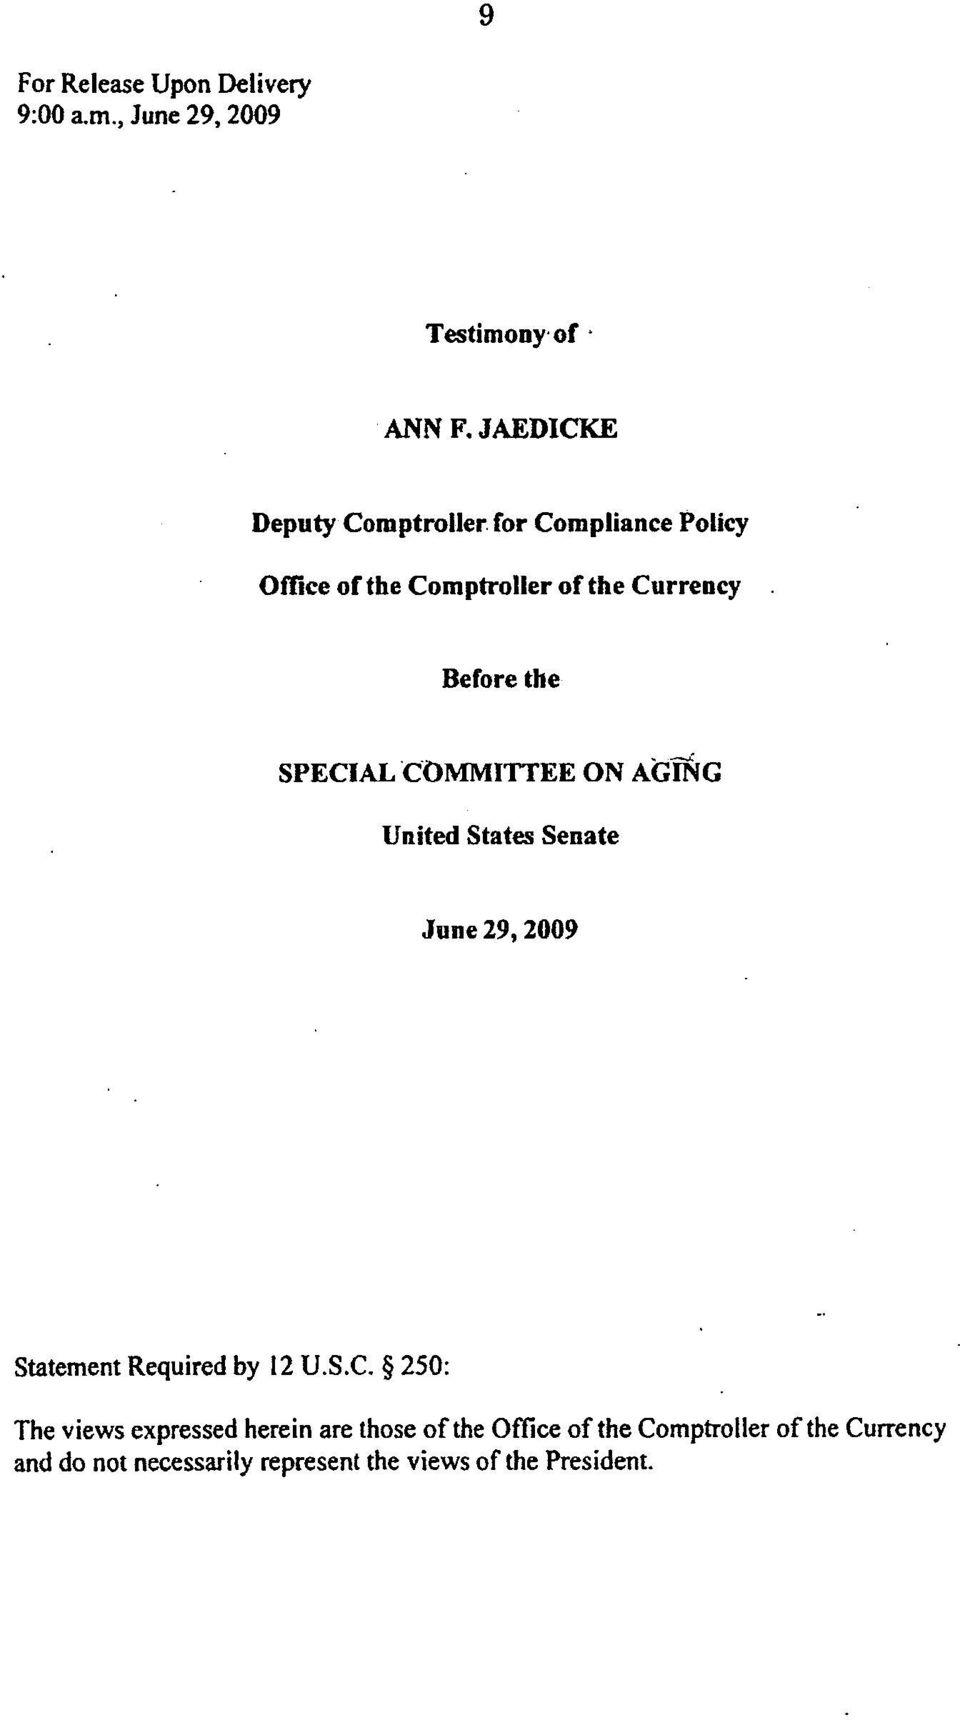 SPECIAL COMMITTEE ON AGING United States Senate June 29, 2009 Statement Required by 12 U.S.C. 250: The